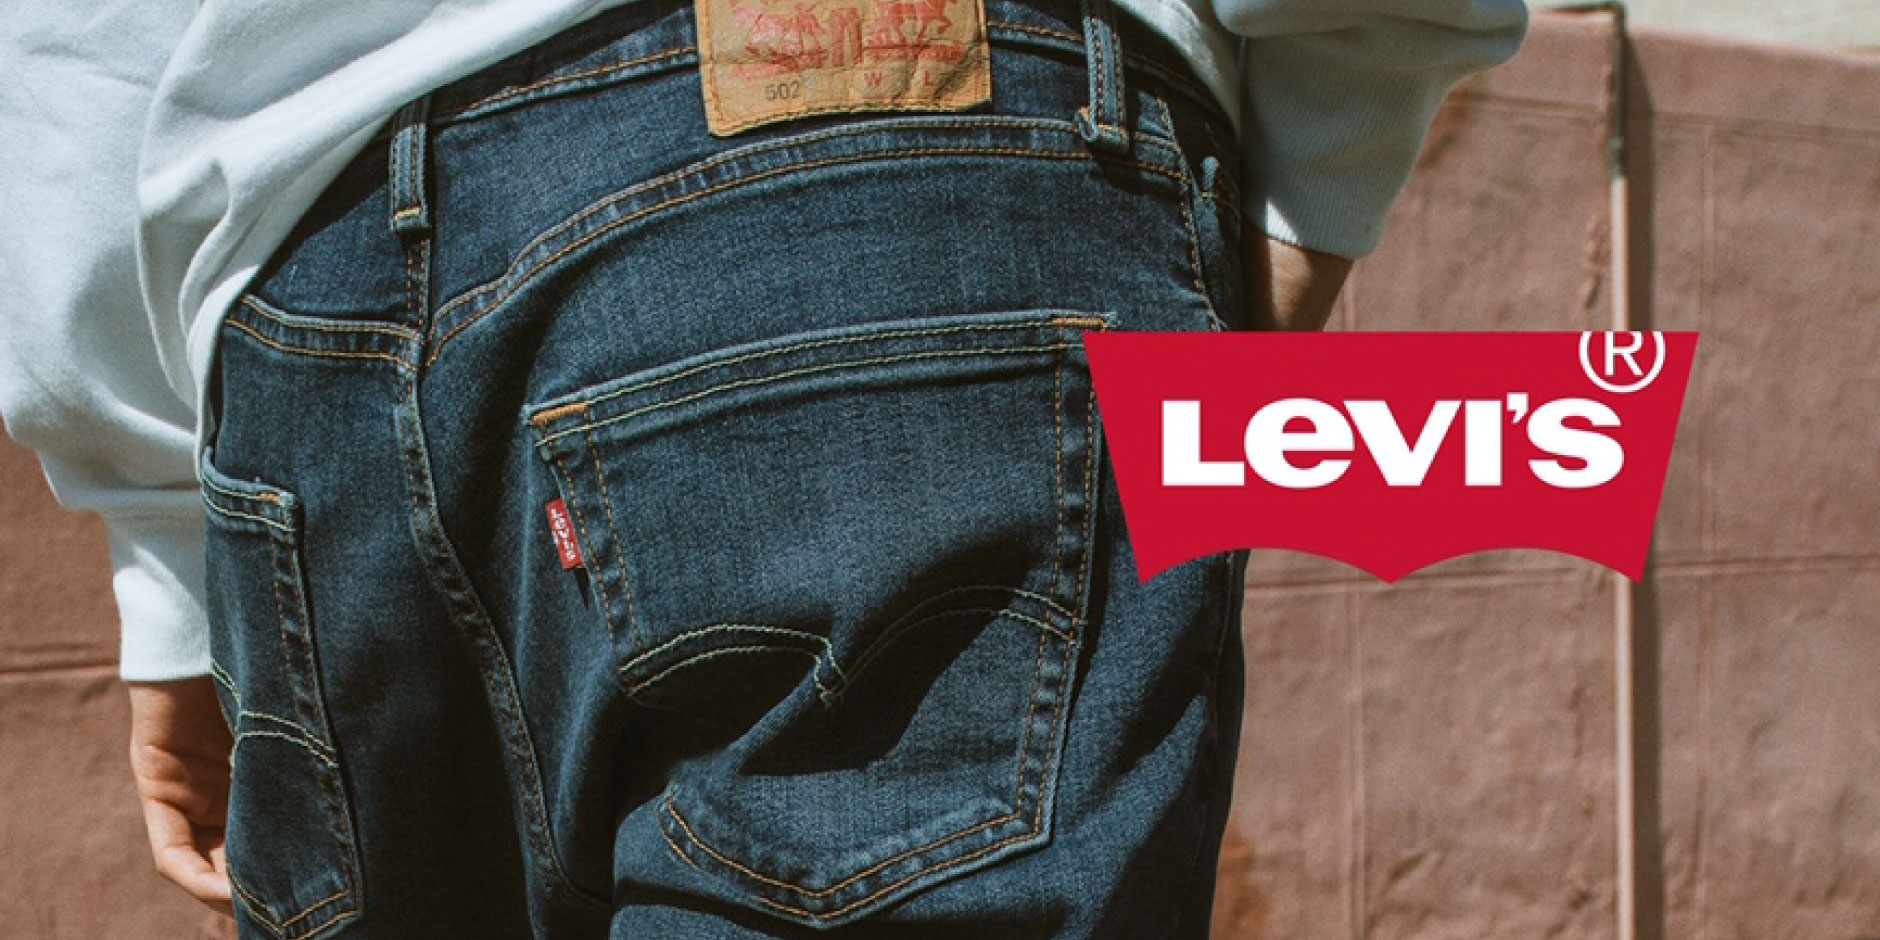 Target's Partnership with Levi Strauss & Co. is Expanding with Red Tab Denim